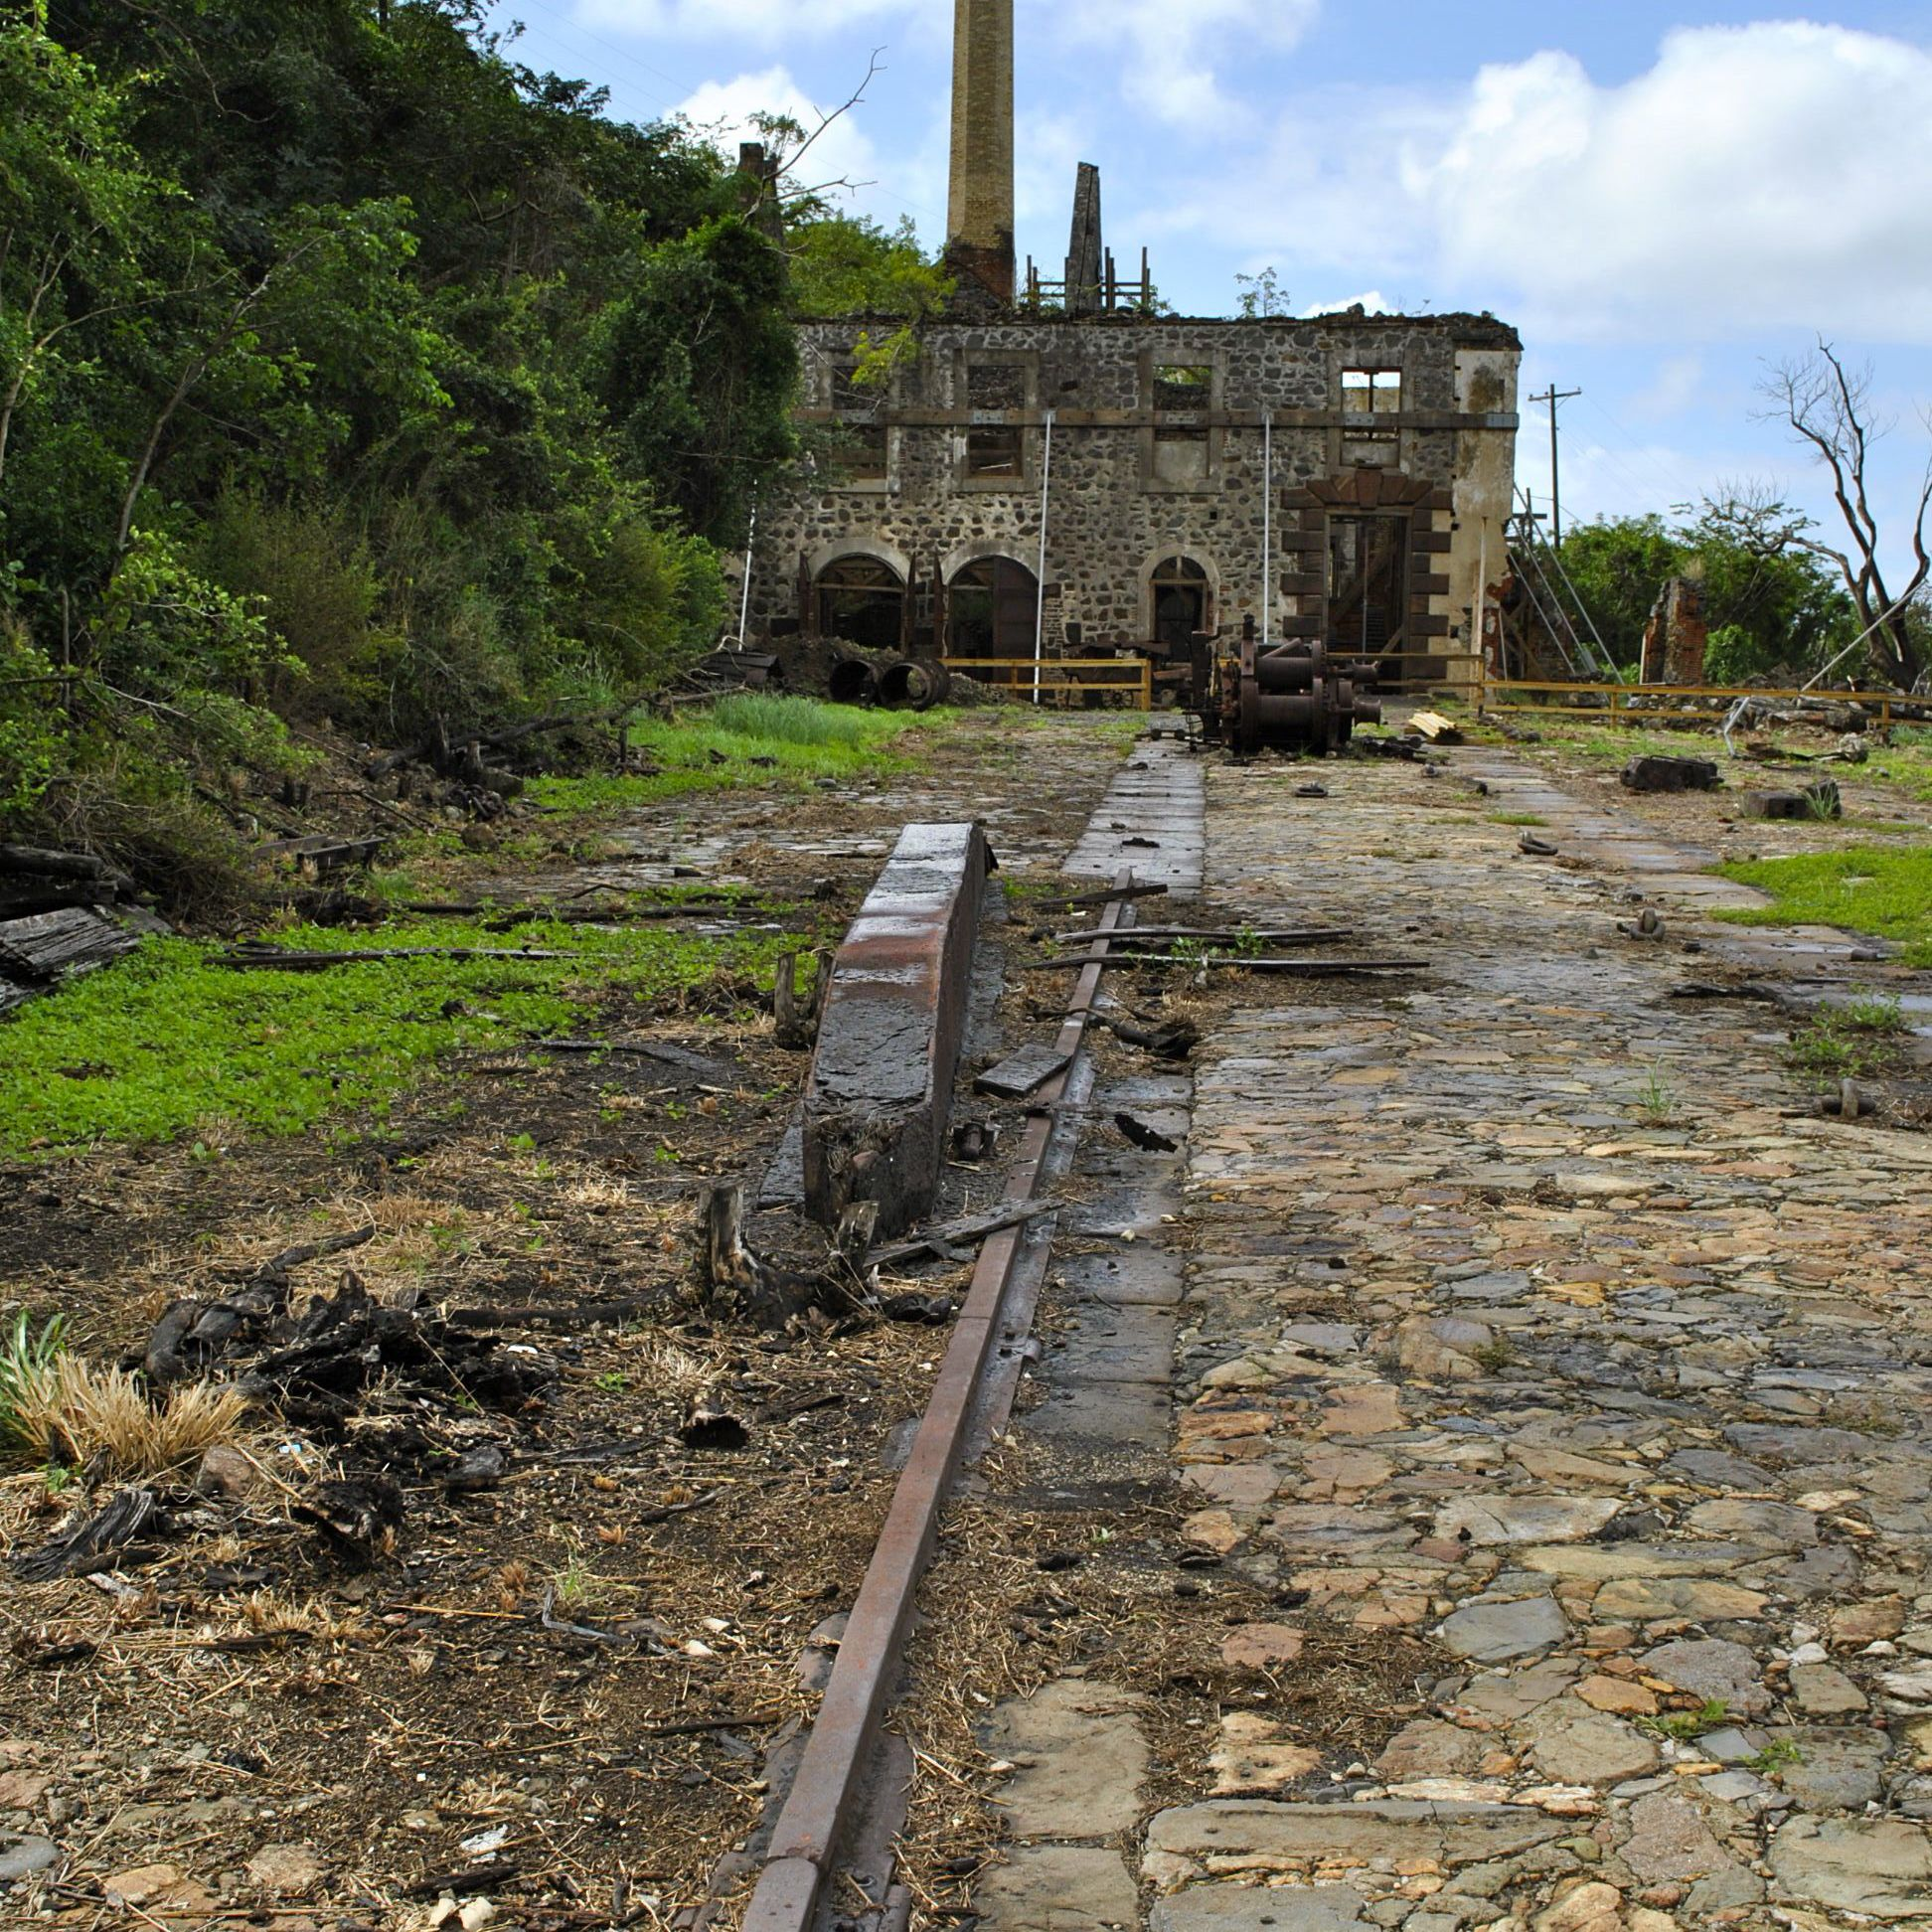 Ruins of the Hassell Island Marine Railroad and engine building.